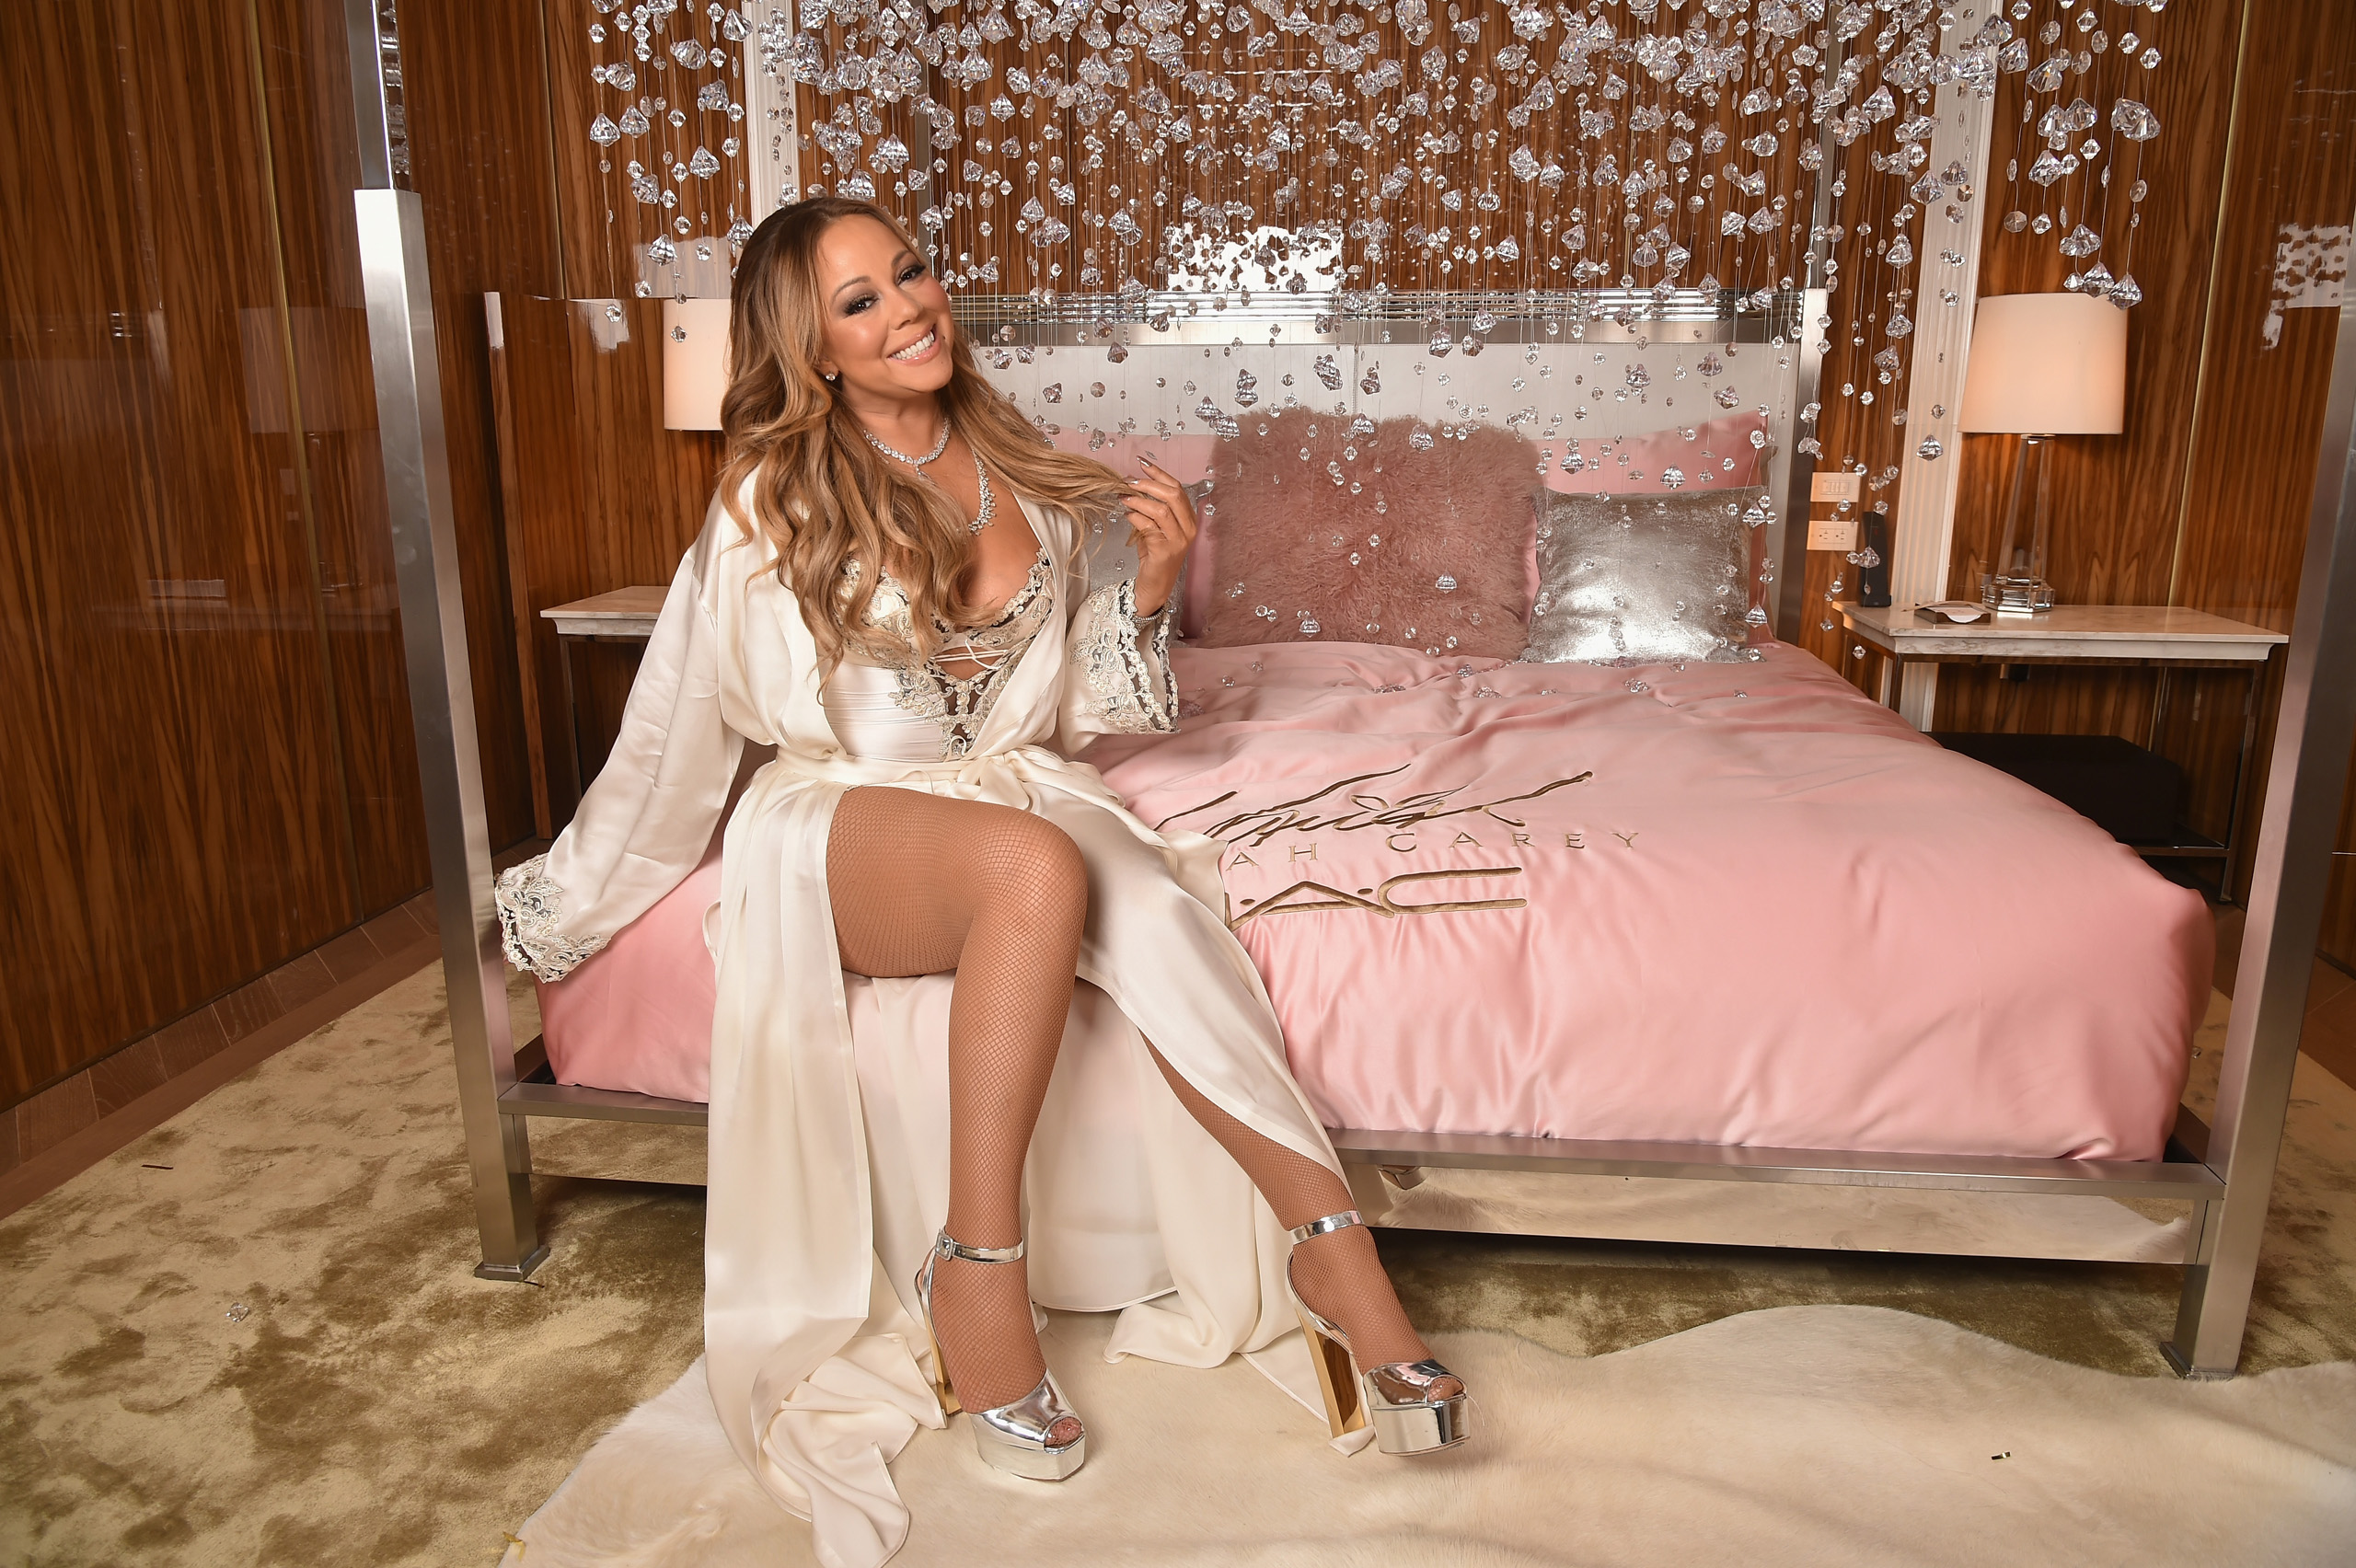 Mariah Carey attends the M.A.C Cosmetics Mariah Carey Beauty Icon Launch at Baccarat Hotelin New York City, on Dec. 3, 2016.